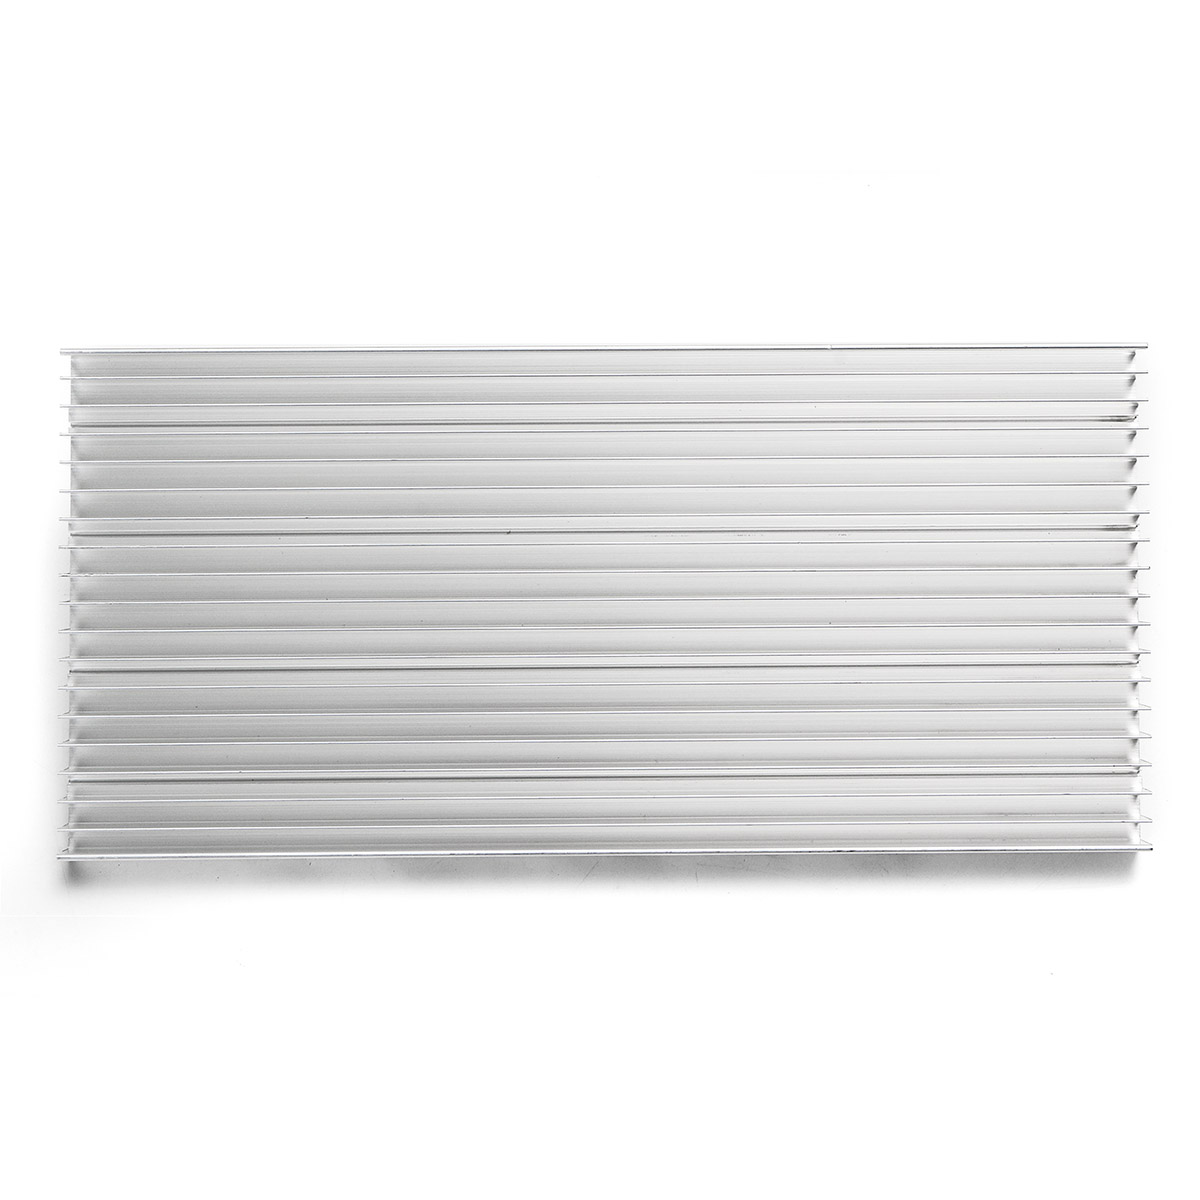 300x140x20mm Aluminum Heatsink For LED Power IC Transistor Module Circuit Board Cooling